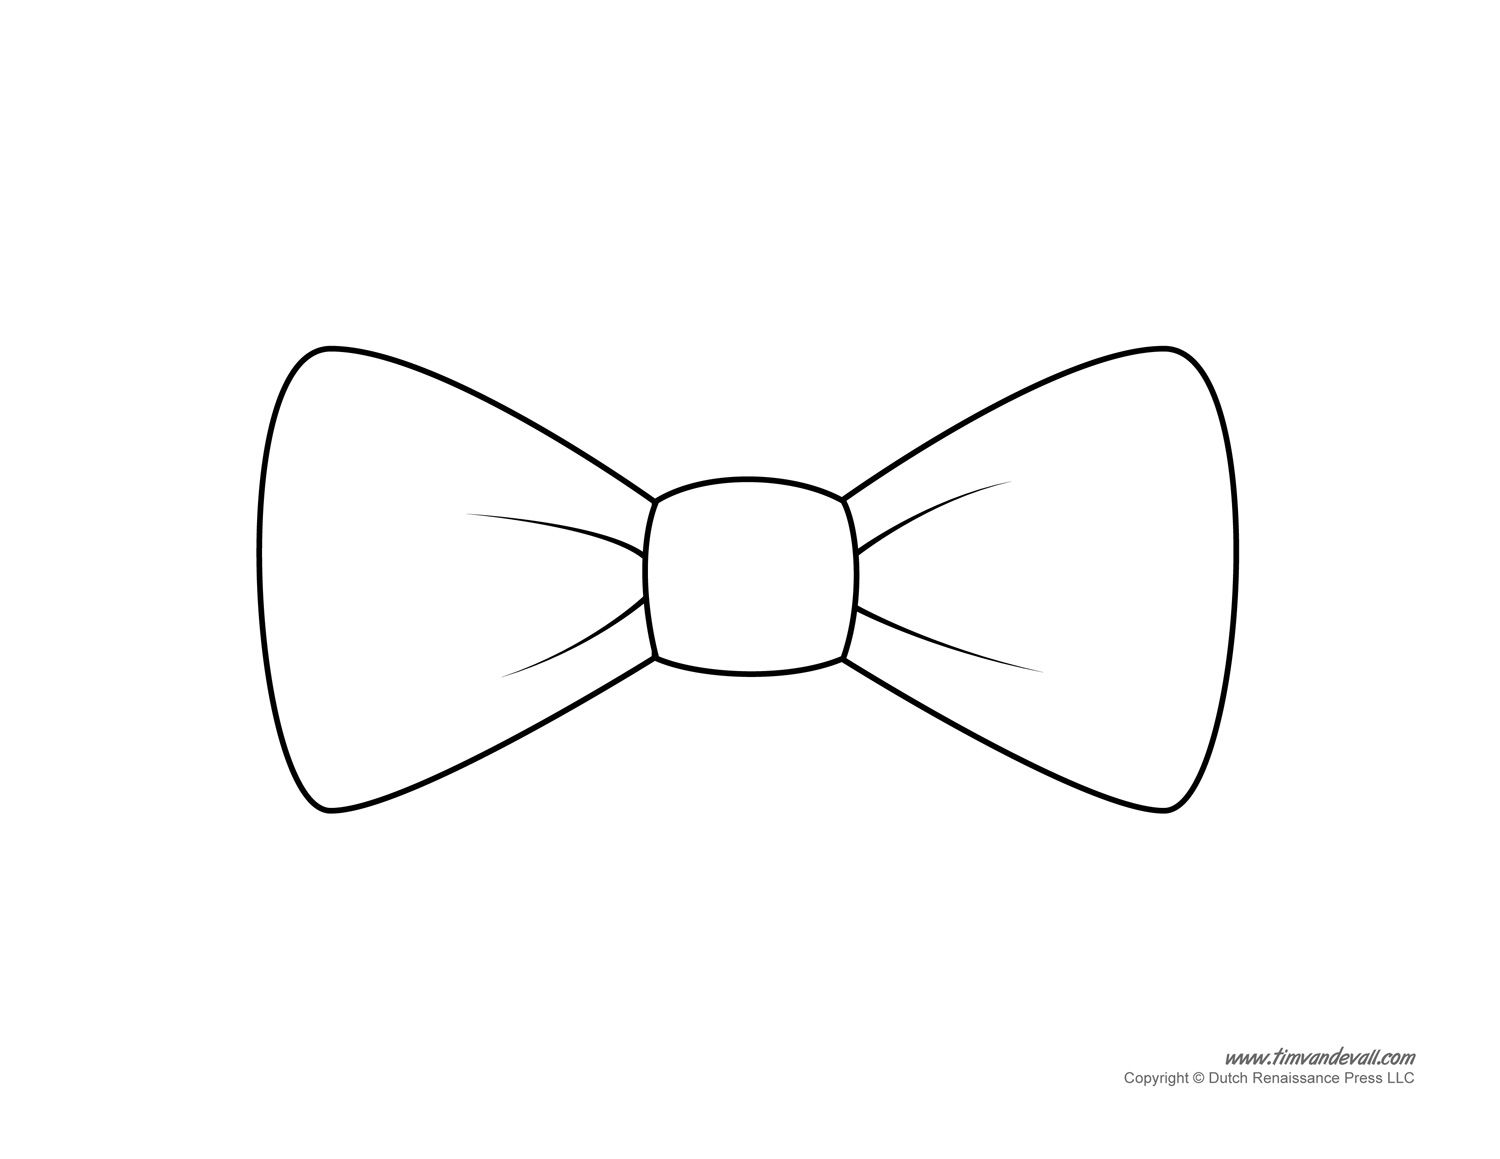 photograph about Bow Tie Template Printable named bow tie drawing Paper Bow Tie Templates Bow Tie